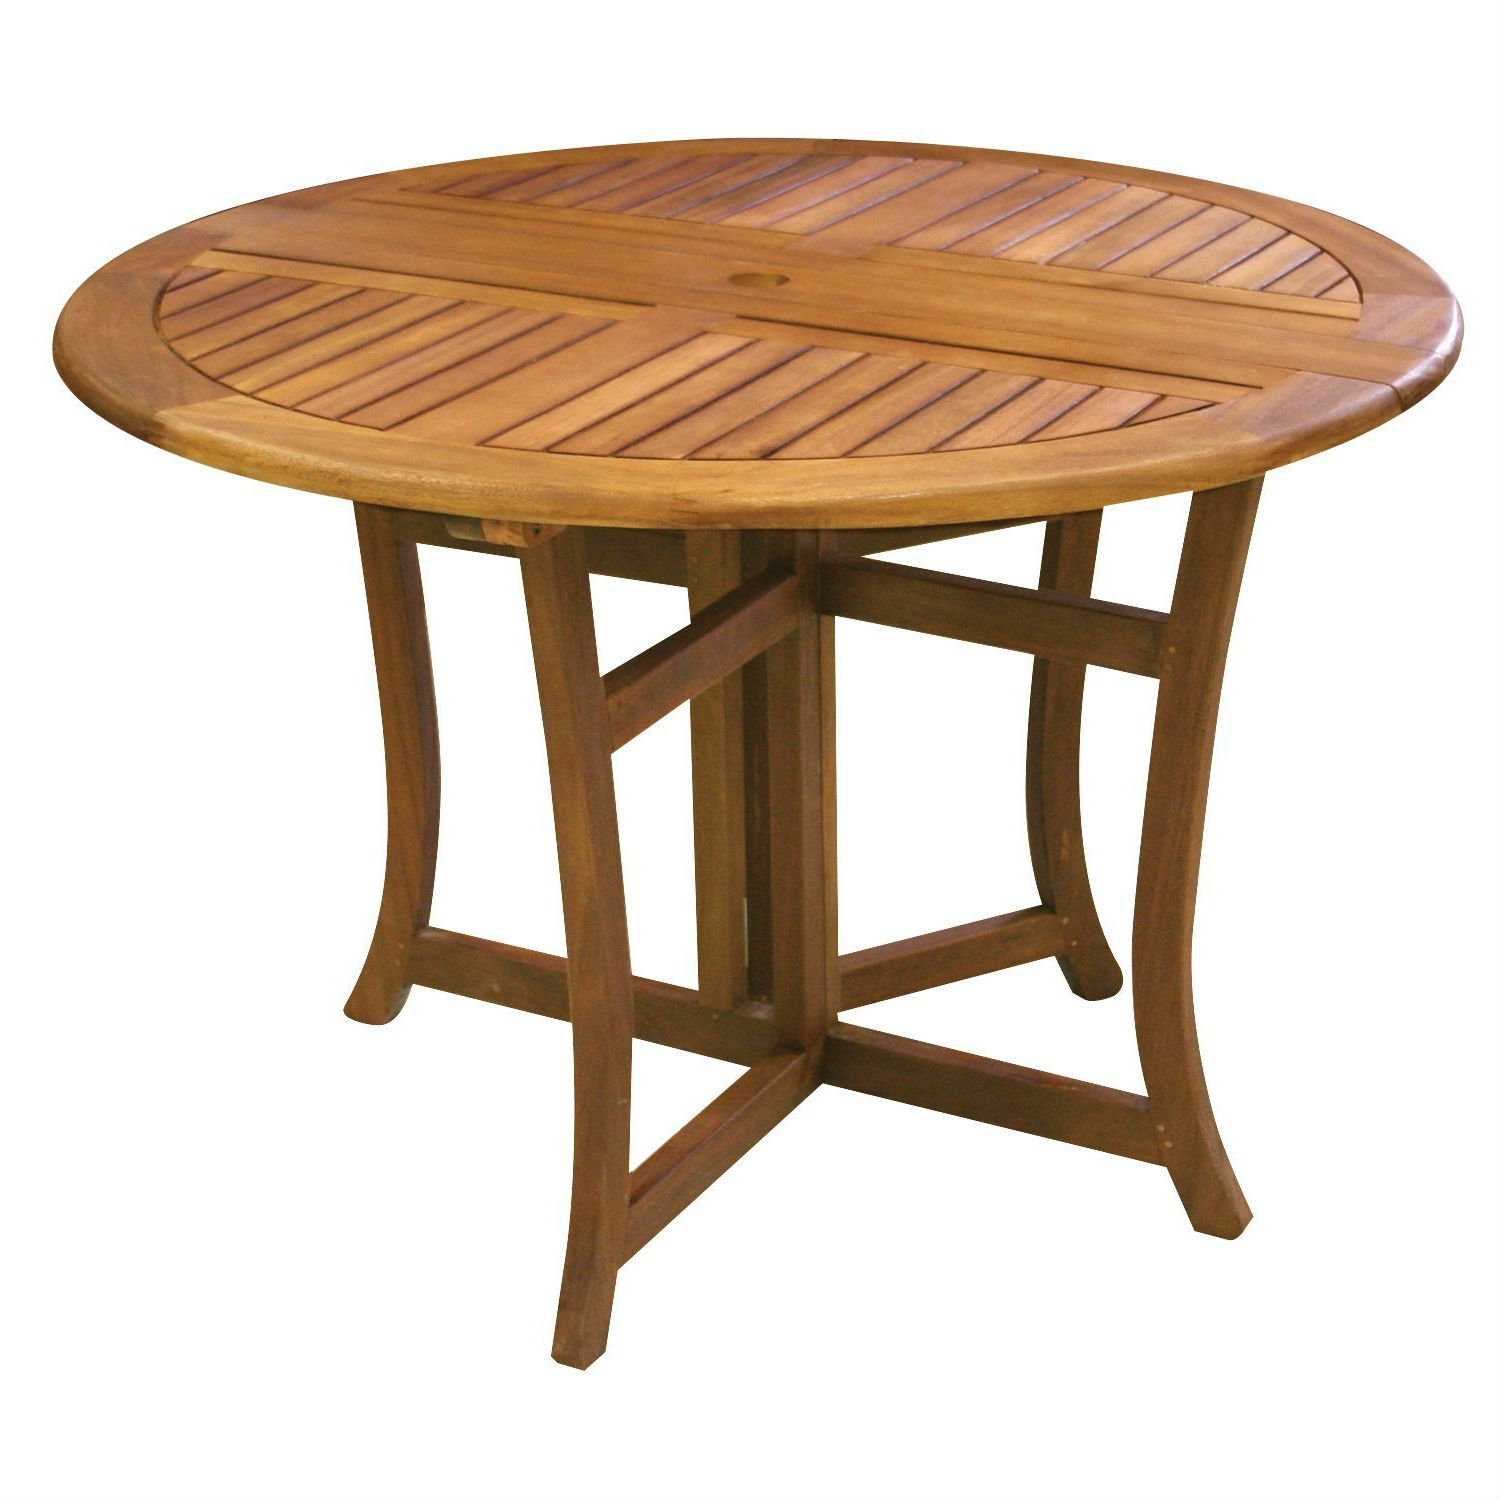 outdoor folding wood patio dining table 43 inch round with umbrella hole